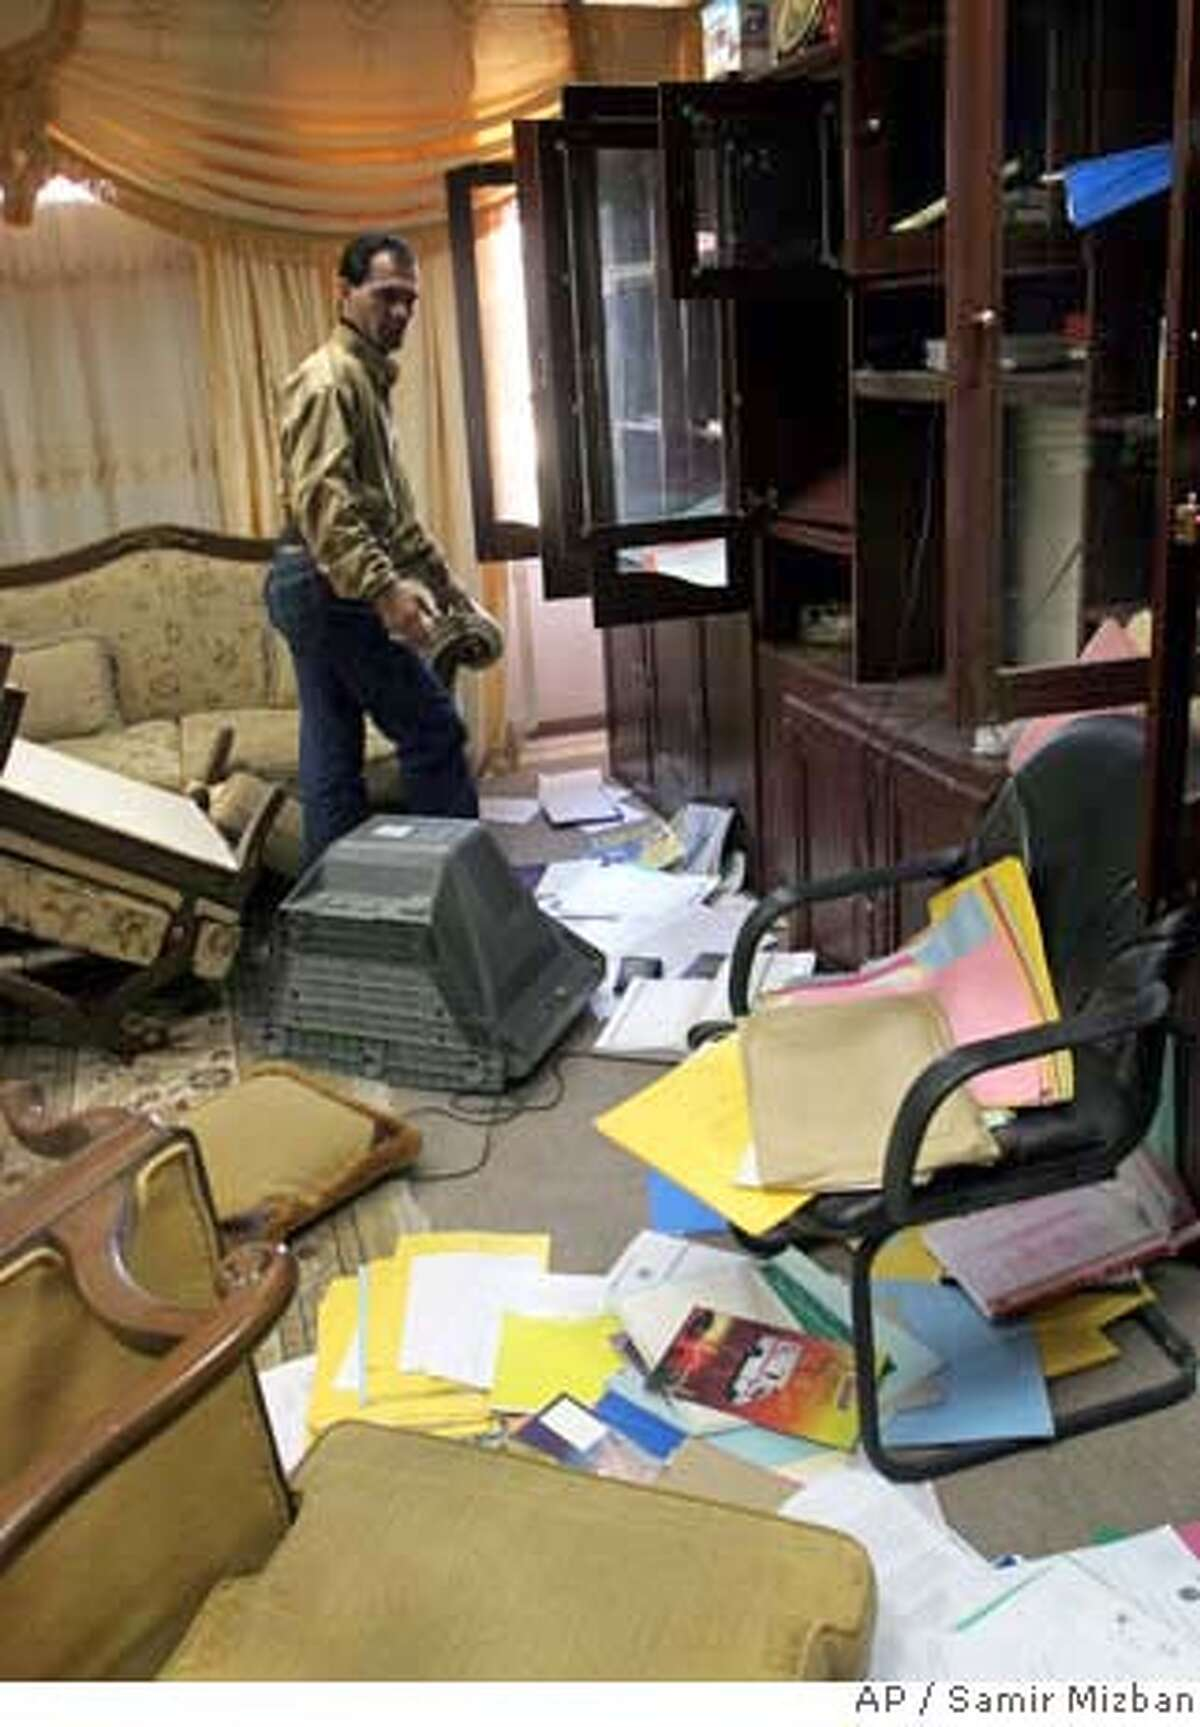 A man stands amid scattered furniture and papers inside the Iraqi Health Ministry offices in Baghdad, Iraq, Thursday, Feb. 8, 2007. Iraqi forces stormed the offices of the Health Ministry on Thursday and detained a senior ministry official accused in alleged corruption and infiltration of the ministry that has funneled millions of dollars to Shiite militiamen blamed for much of the recent sectarian violence in the capital, the U.S. military said. (AP Photo/Samir Mizban)